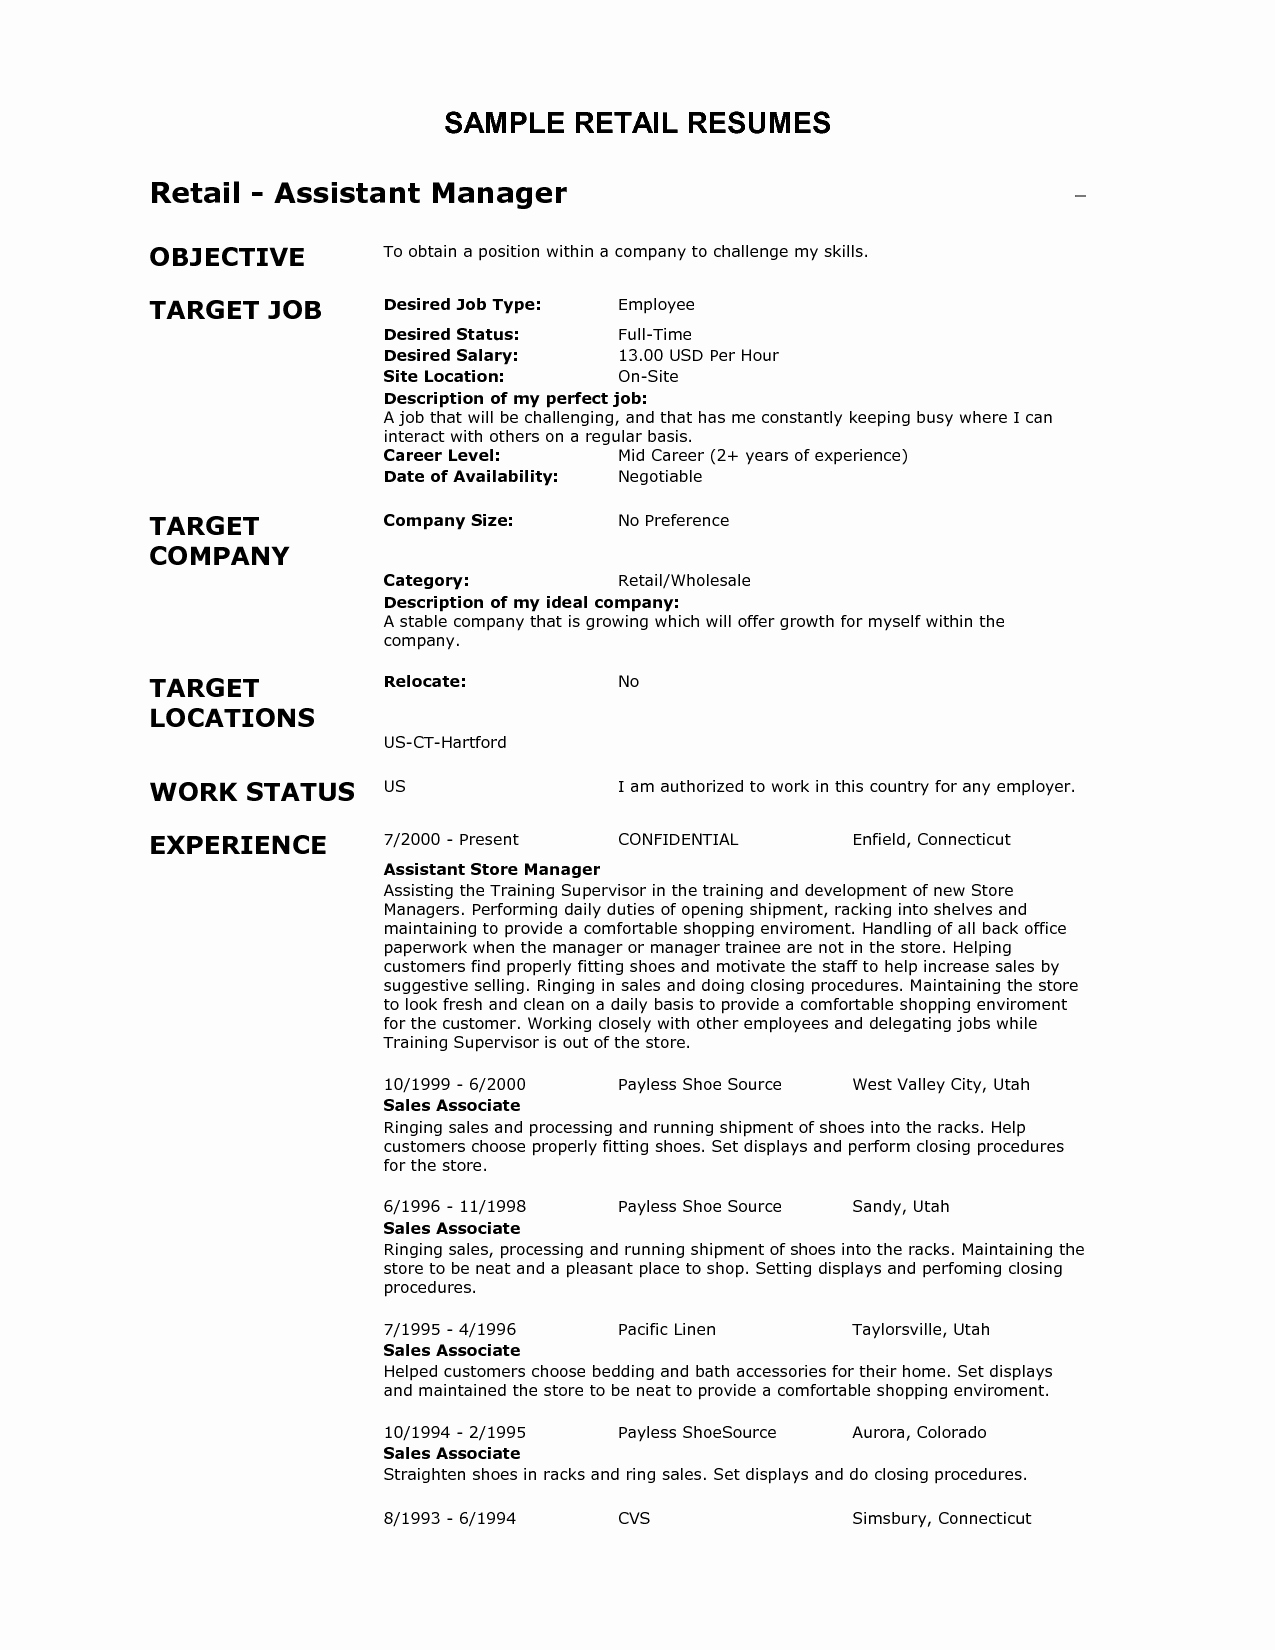 Customer Service Retail Job Description for Resume